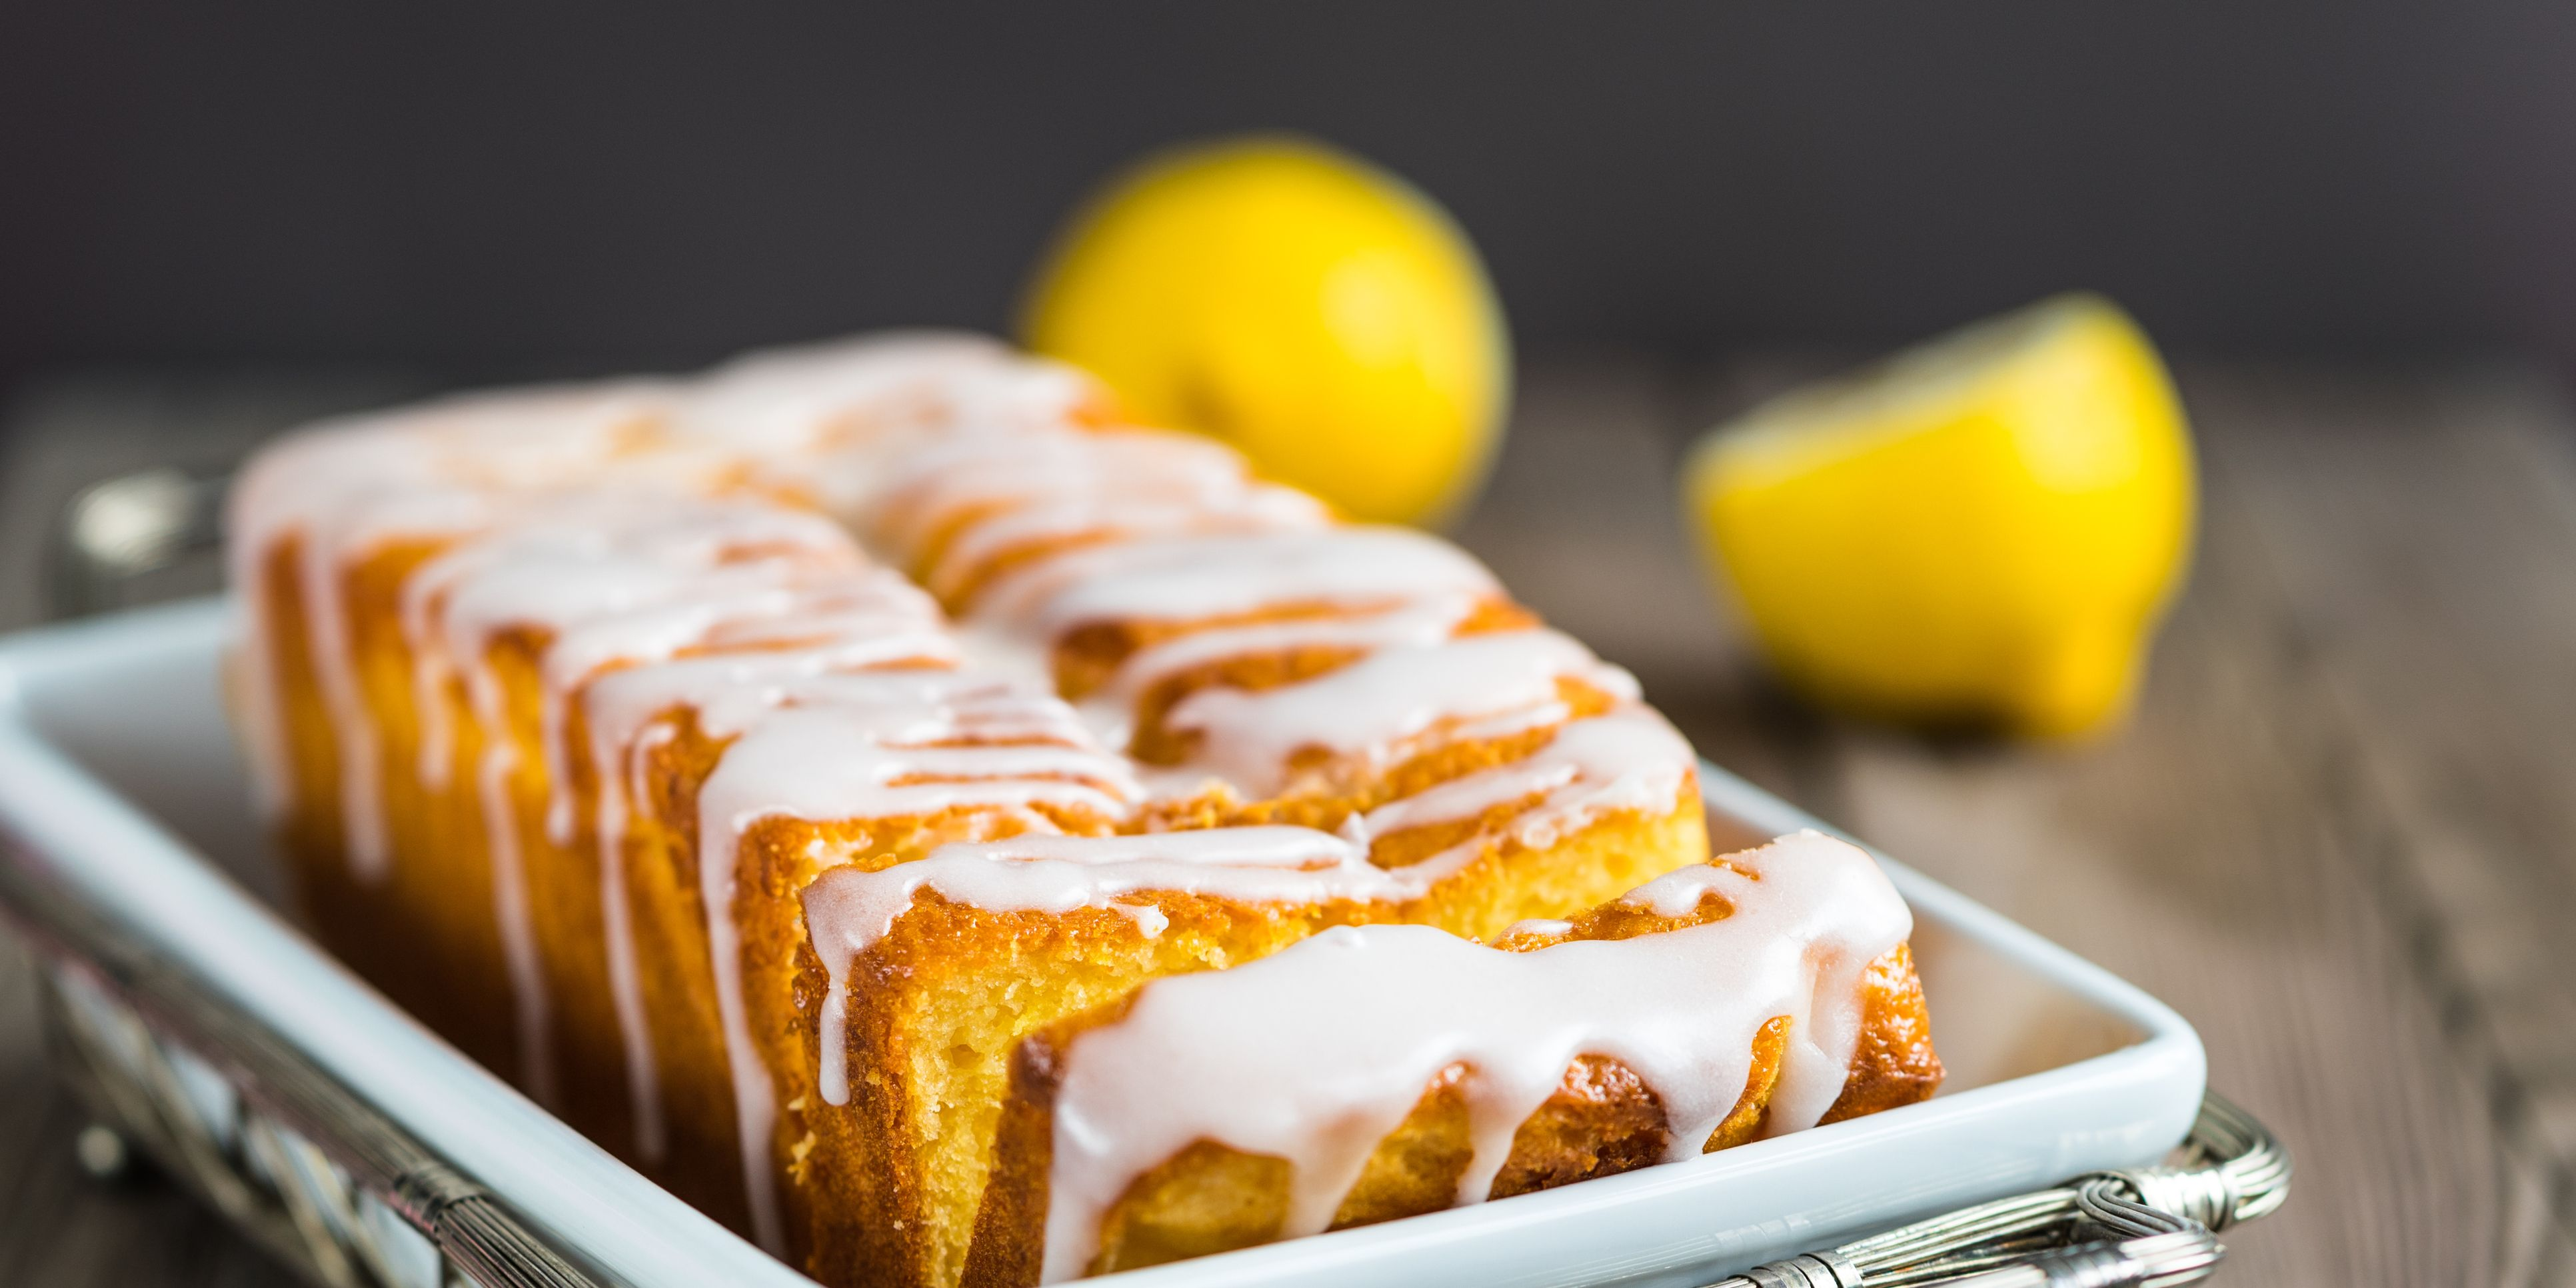 B&M lemon drizzle cake-flavoured gin